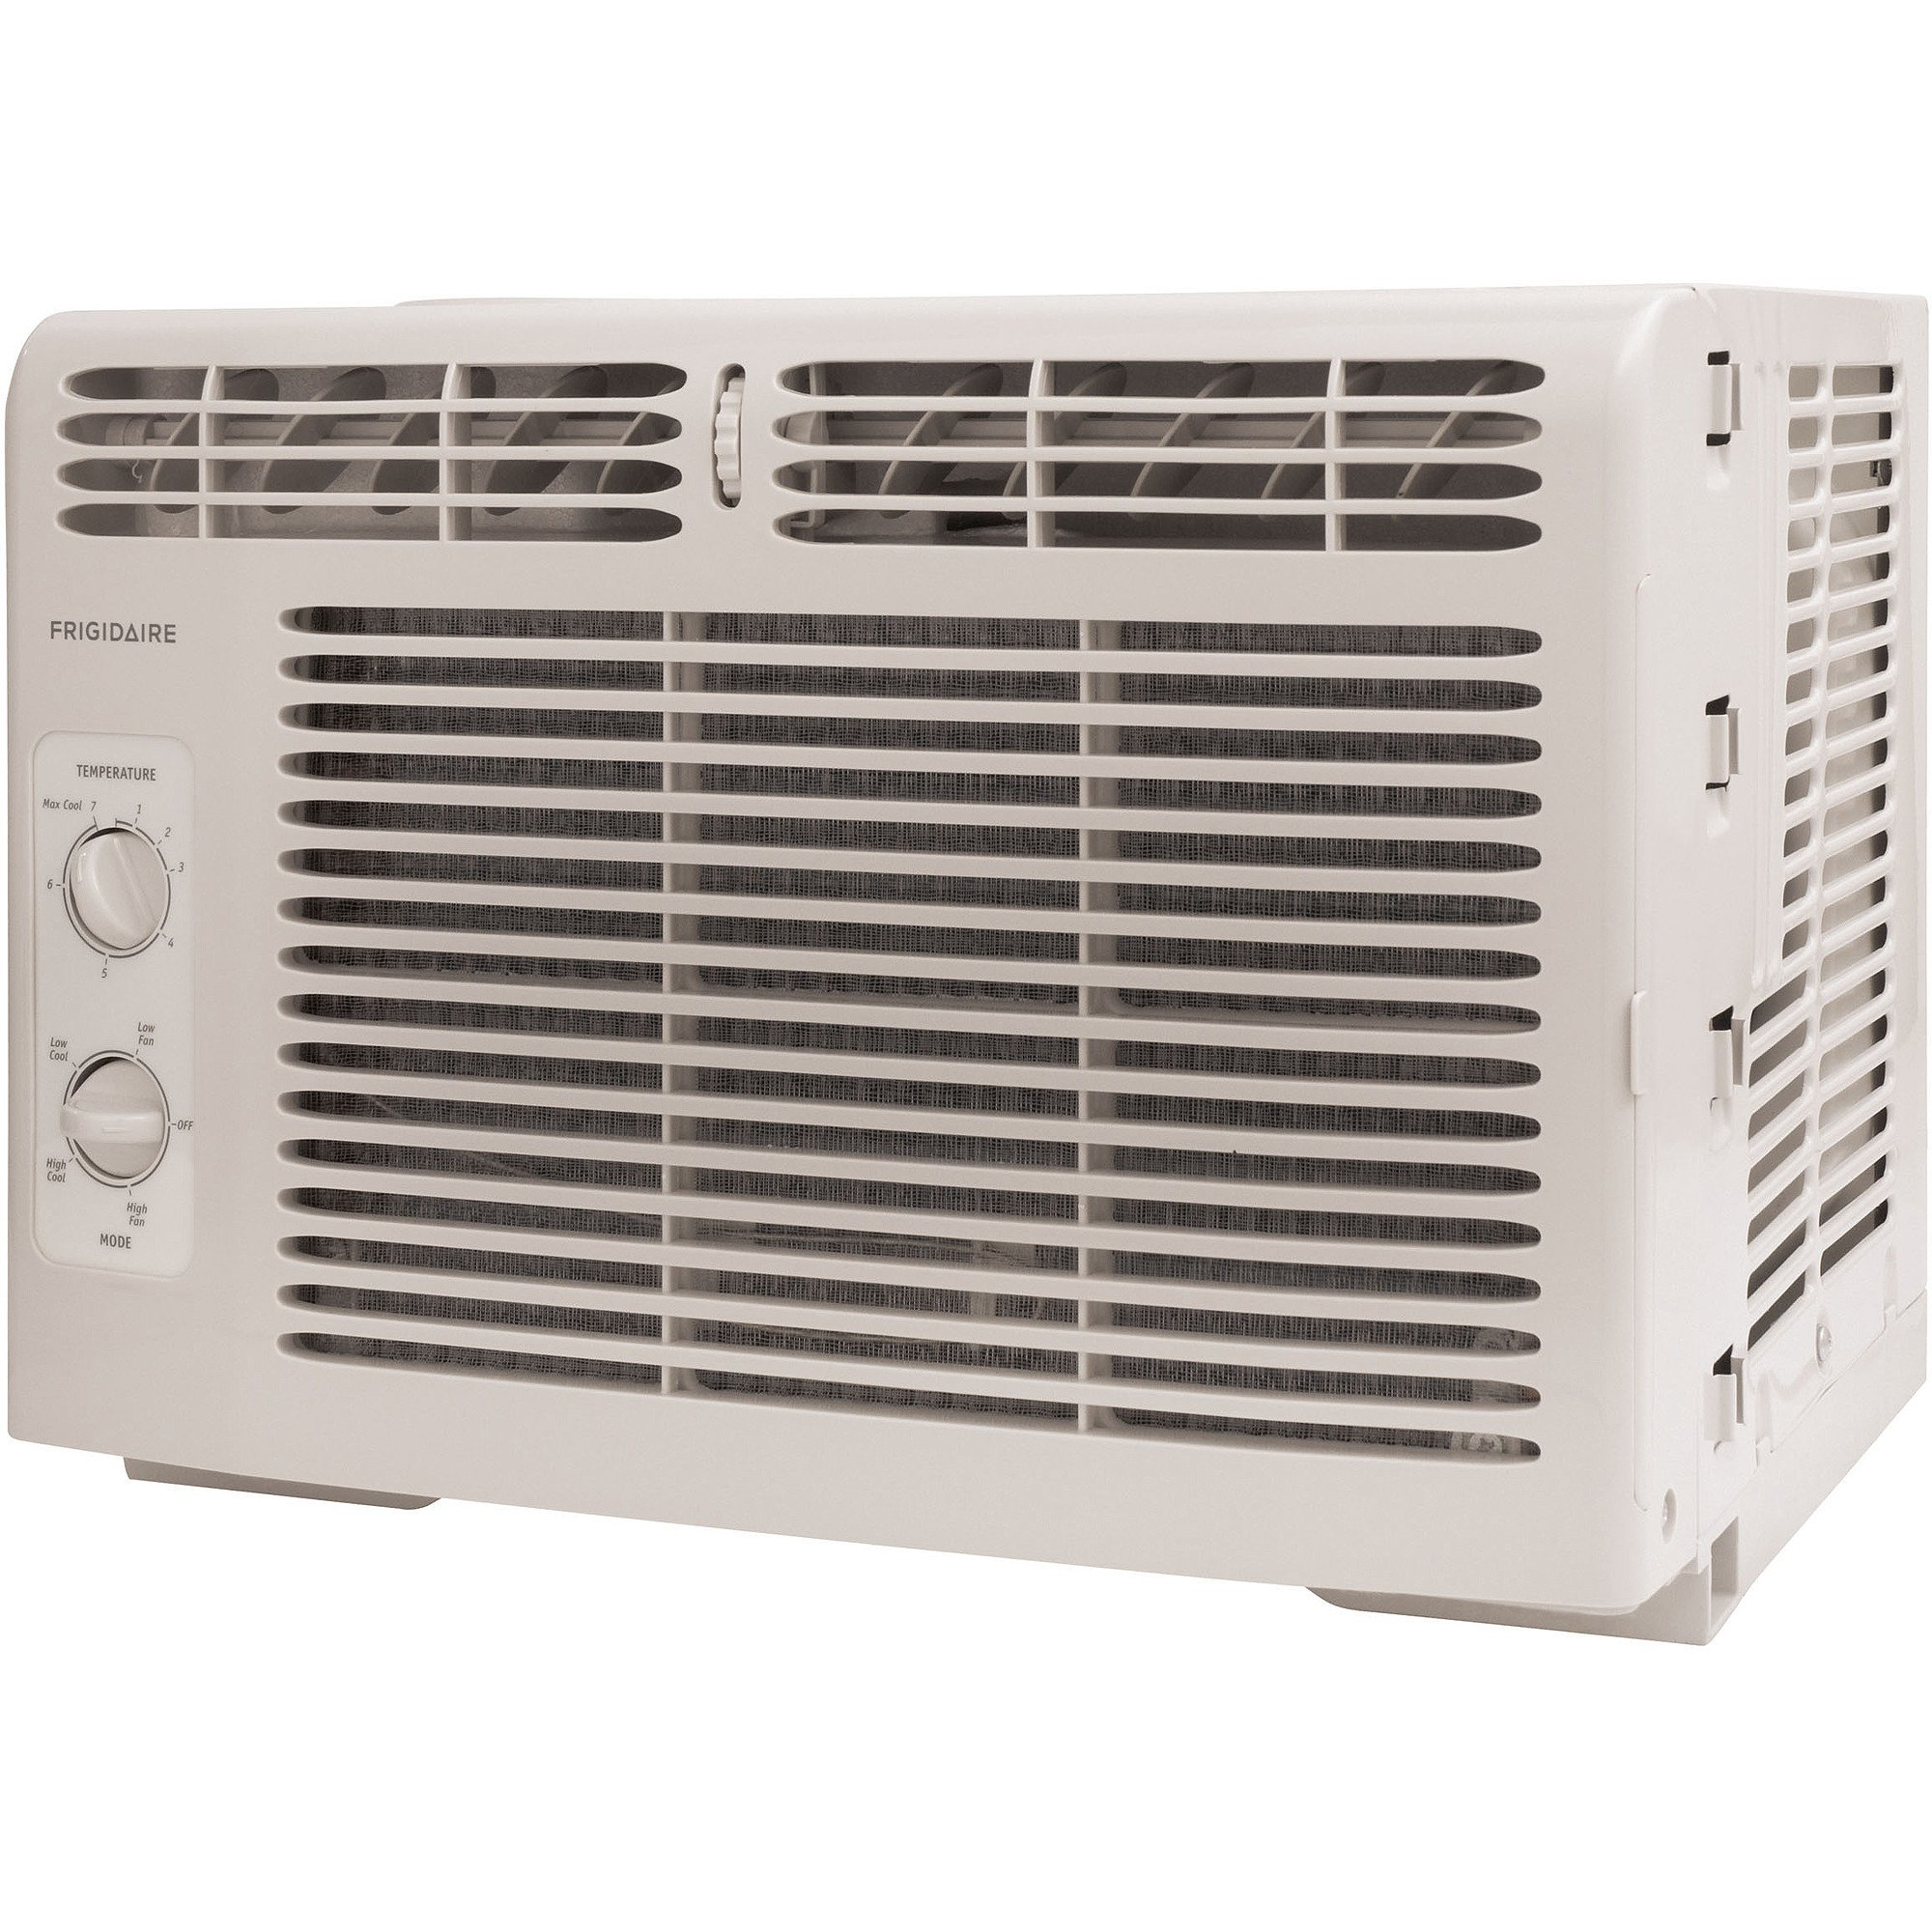 Small Bedroom Air Conditioner Lovely Frigidaire Fra082at7 8 000 Btu 115v Window Mounted Pact Air Conditioner with Mechanical Controls Walmart